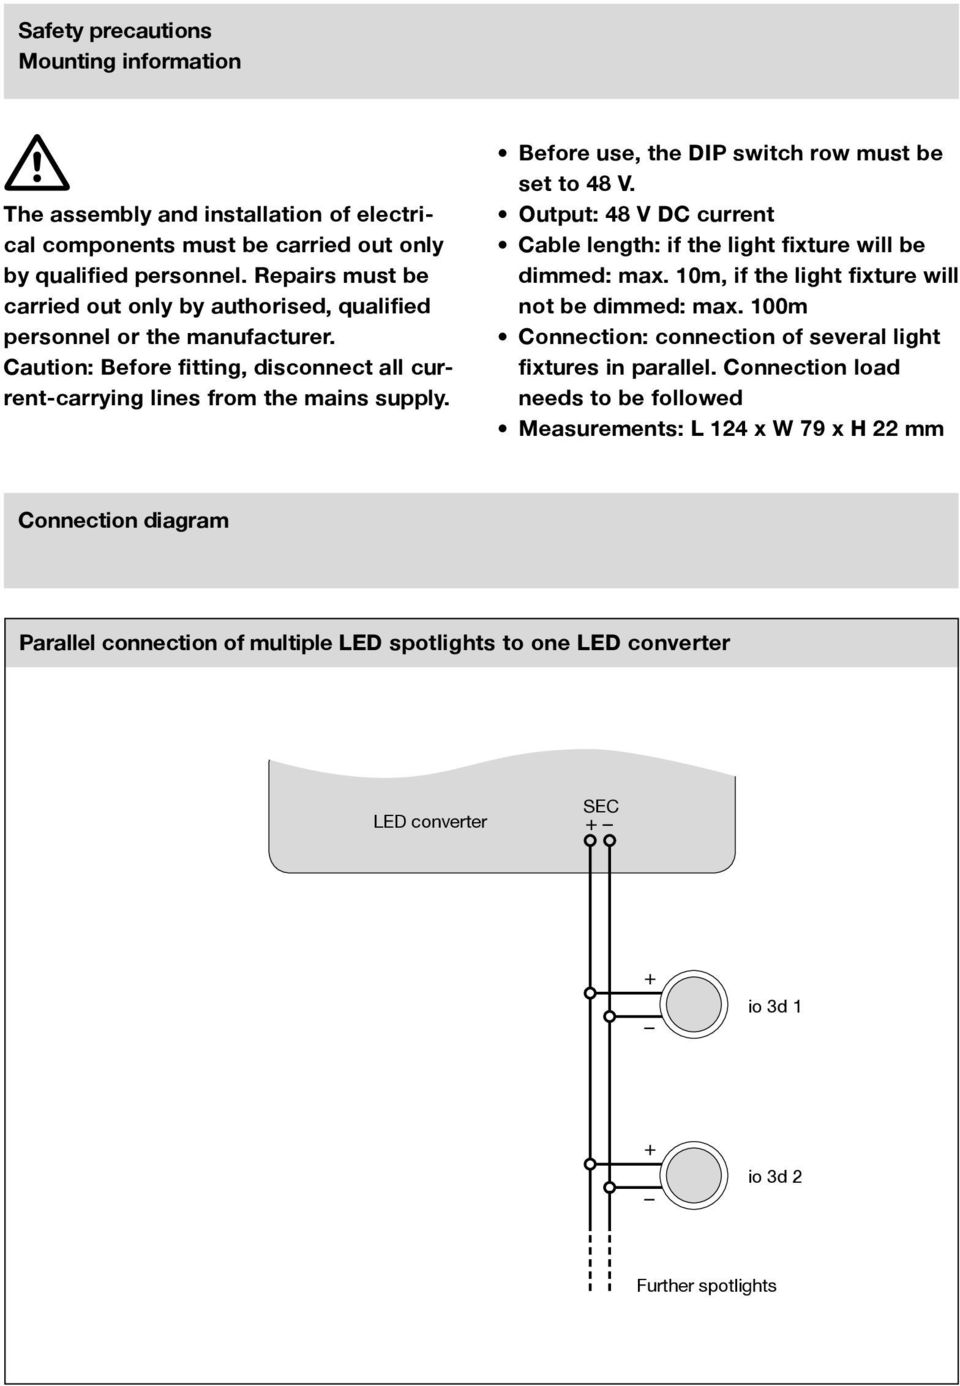 Led Konverter Anschlussschemata Converter Connection Diagrams Dc Dimmer Switch Wiring Diagram Before Use The Dip Row Must Be Set To 48 V Output 11